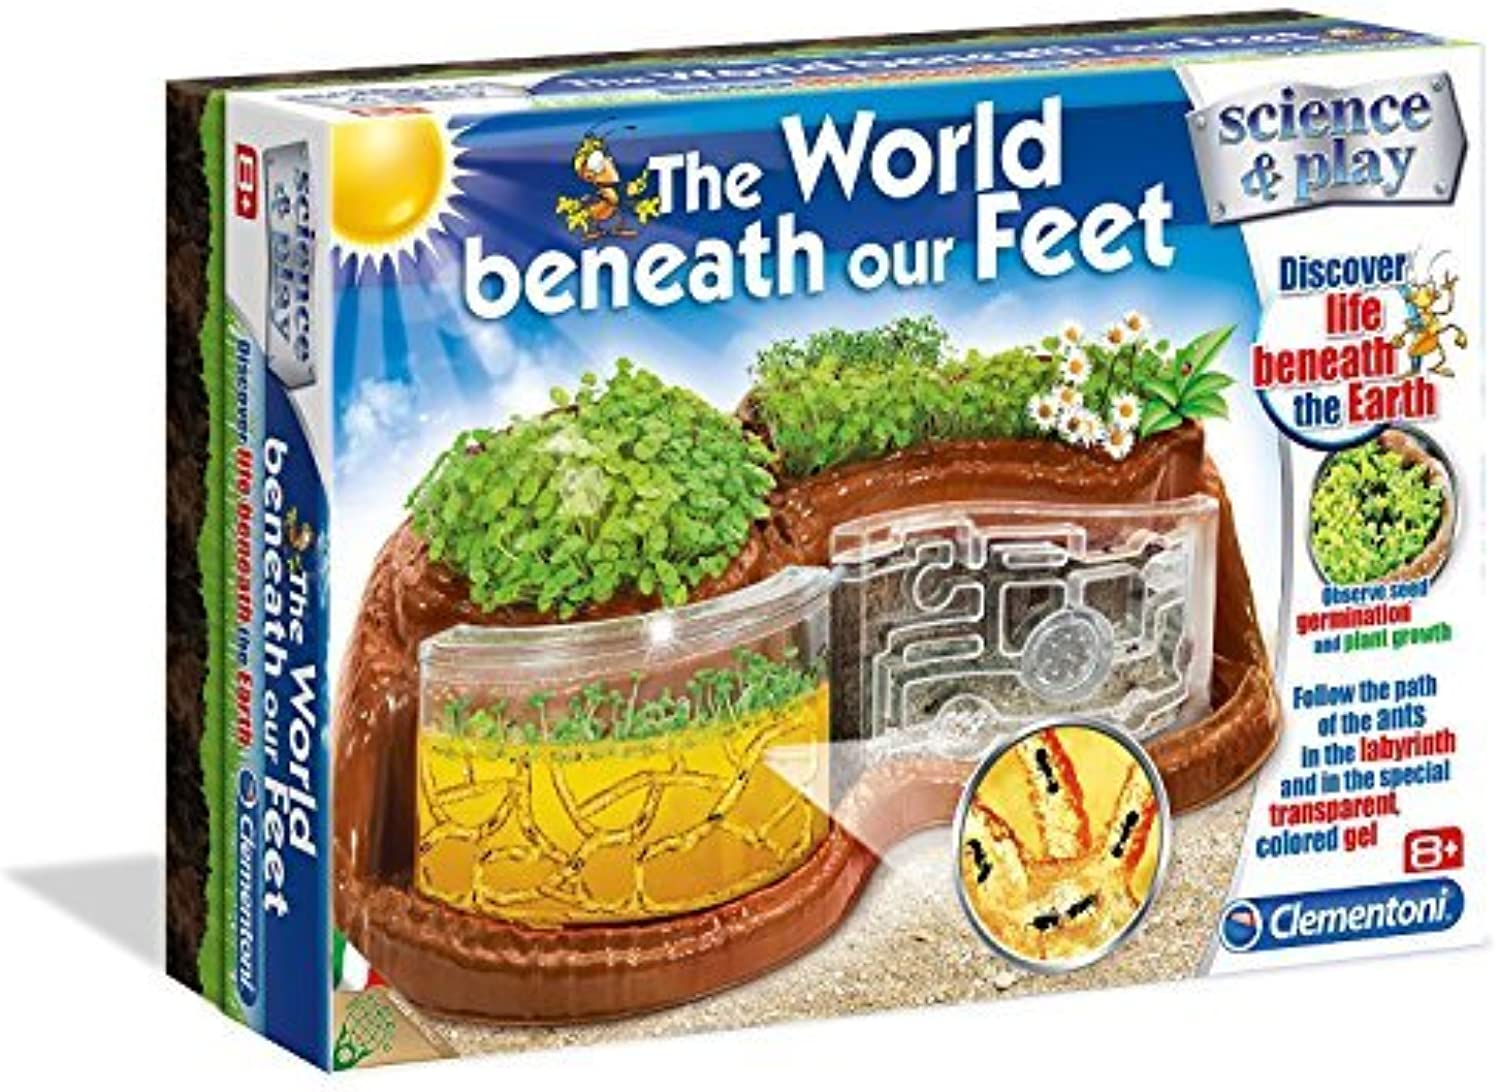 The World Beneath Our Feet by Creative Toy